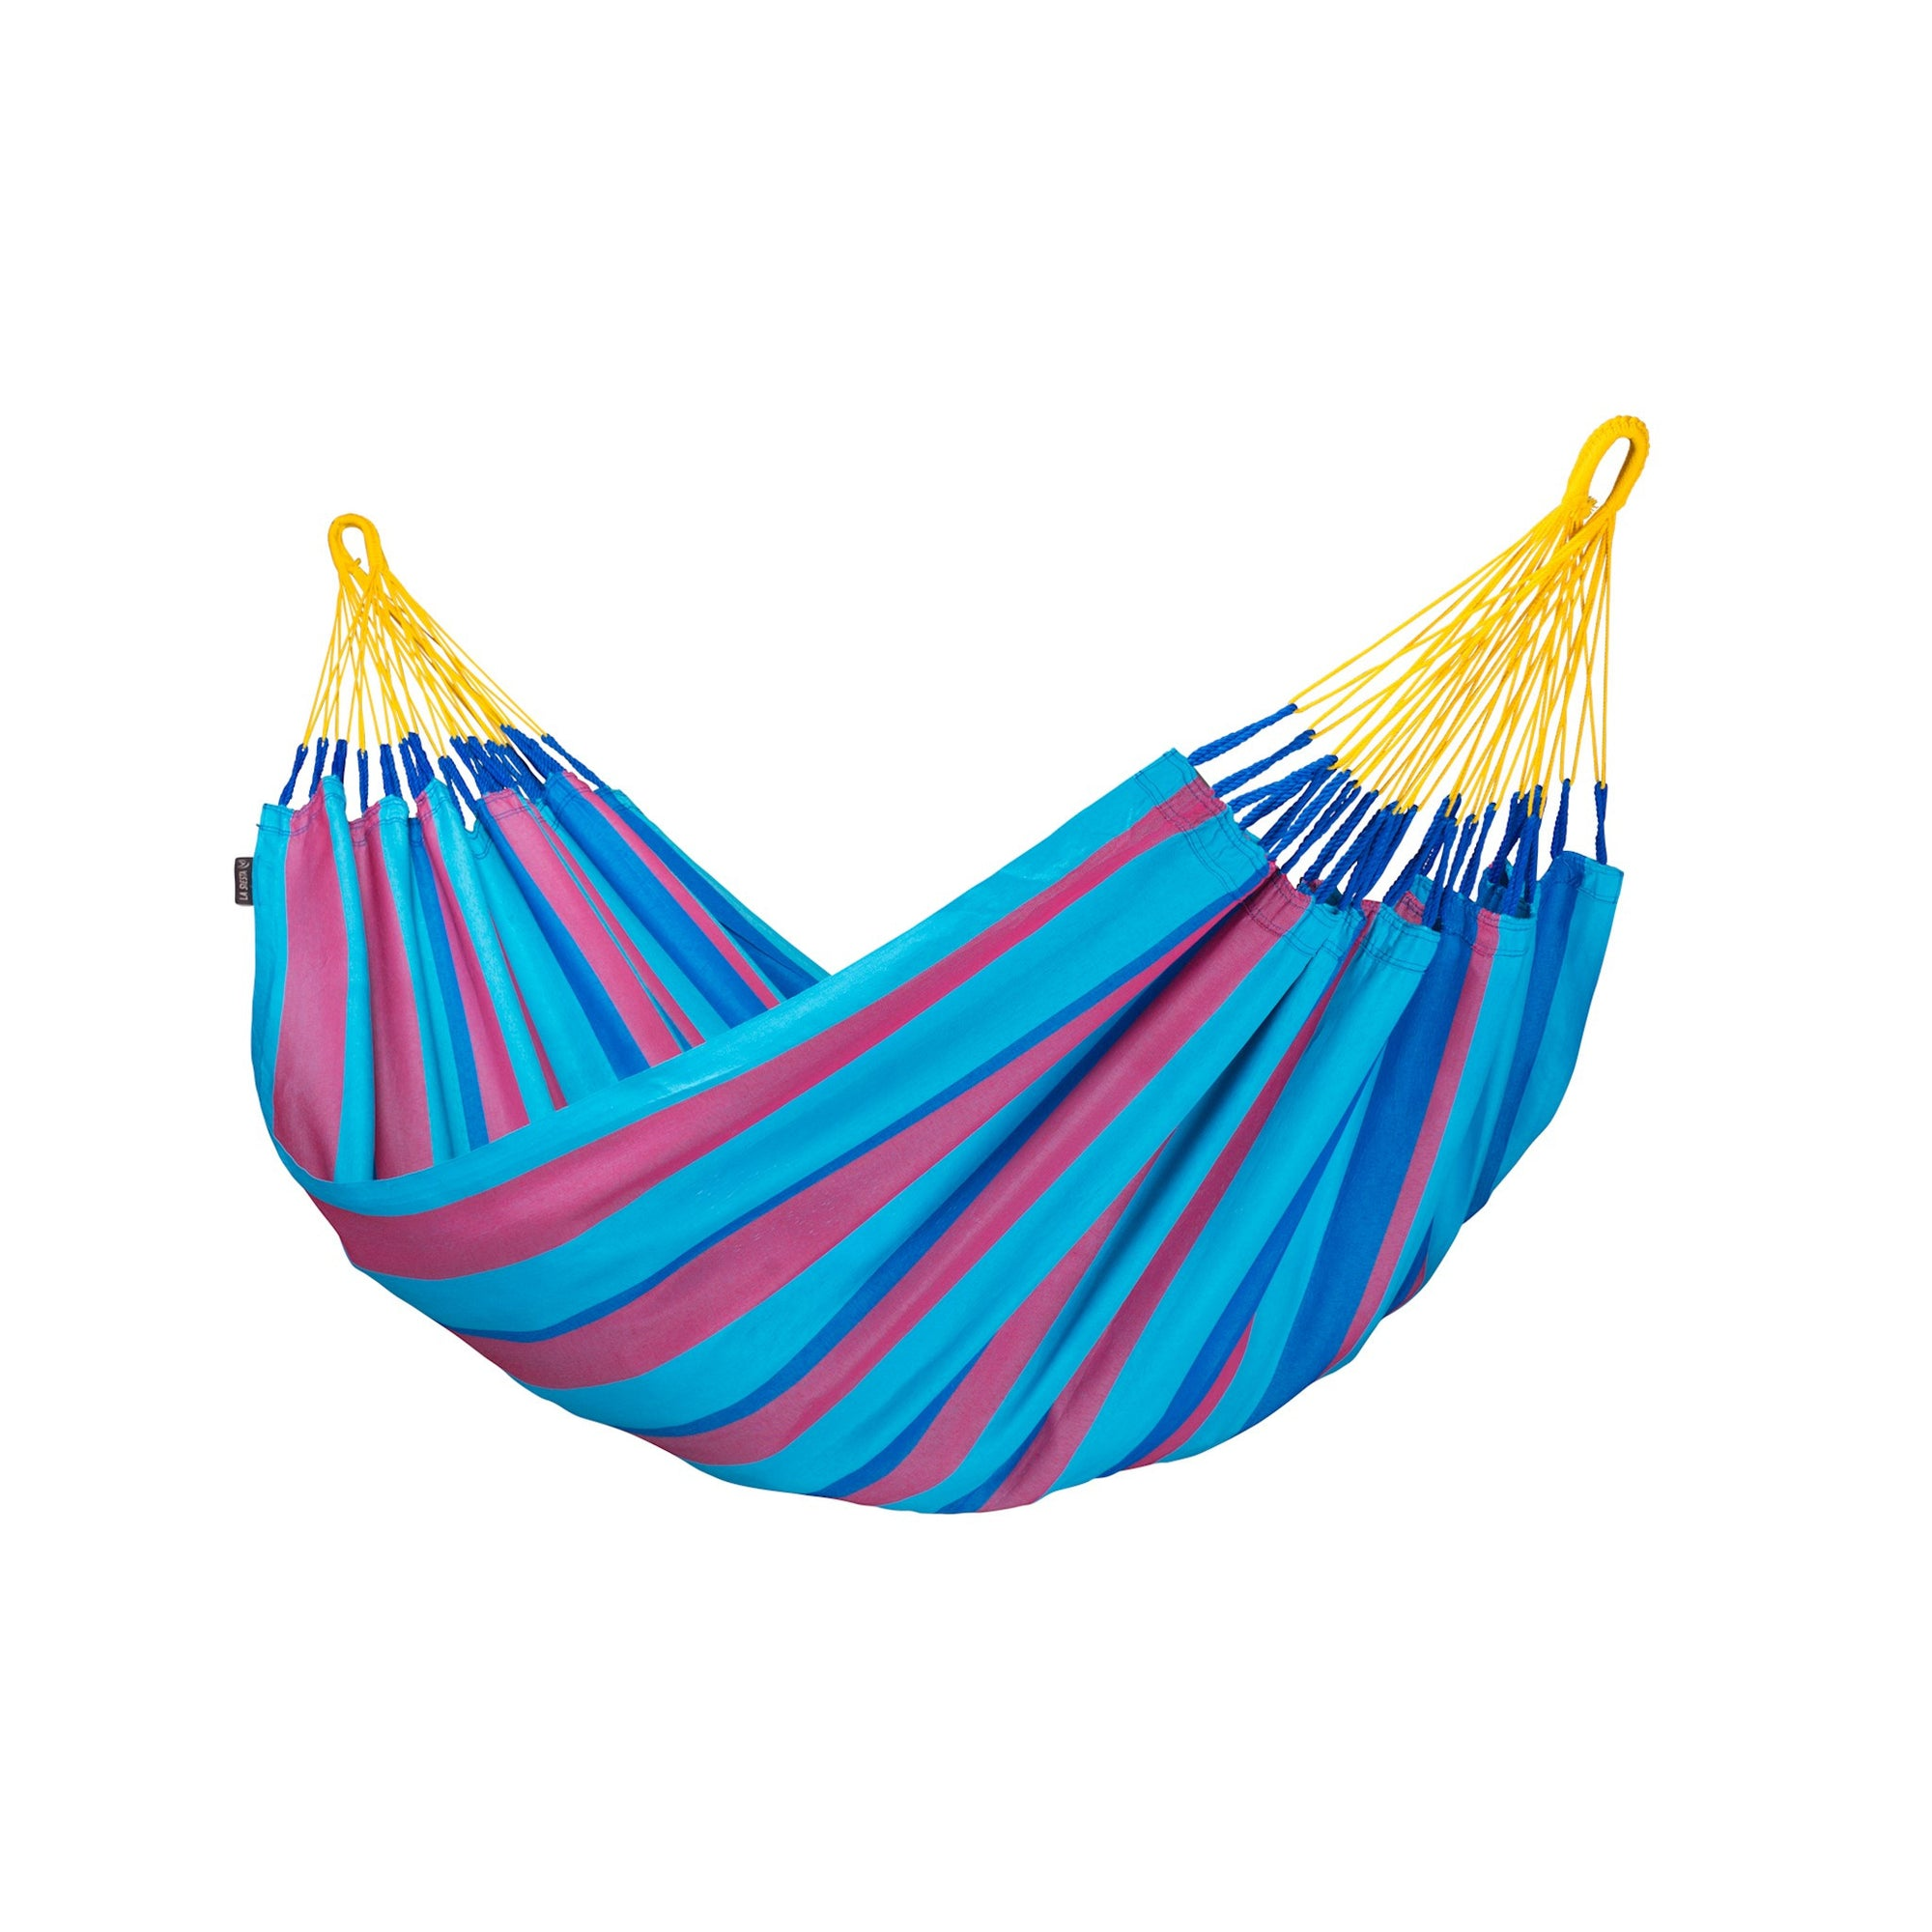 Sonrisa Single Classic Hammock